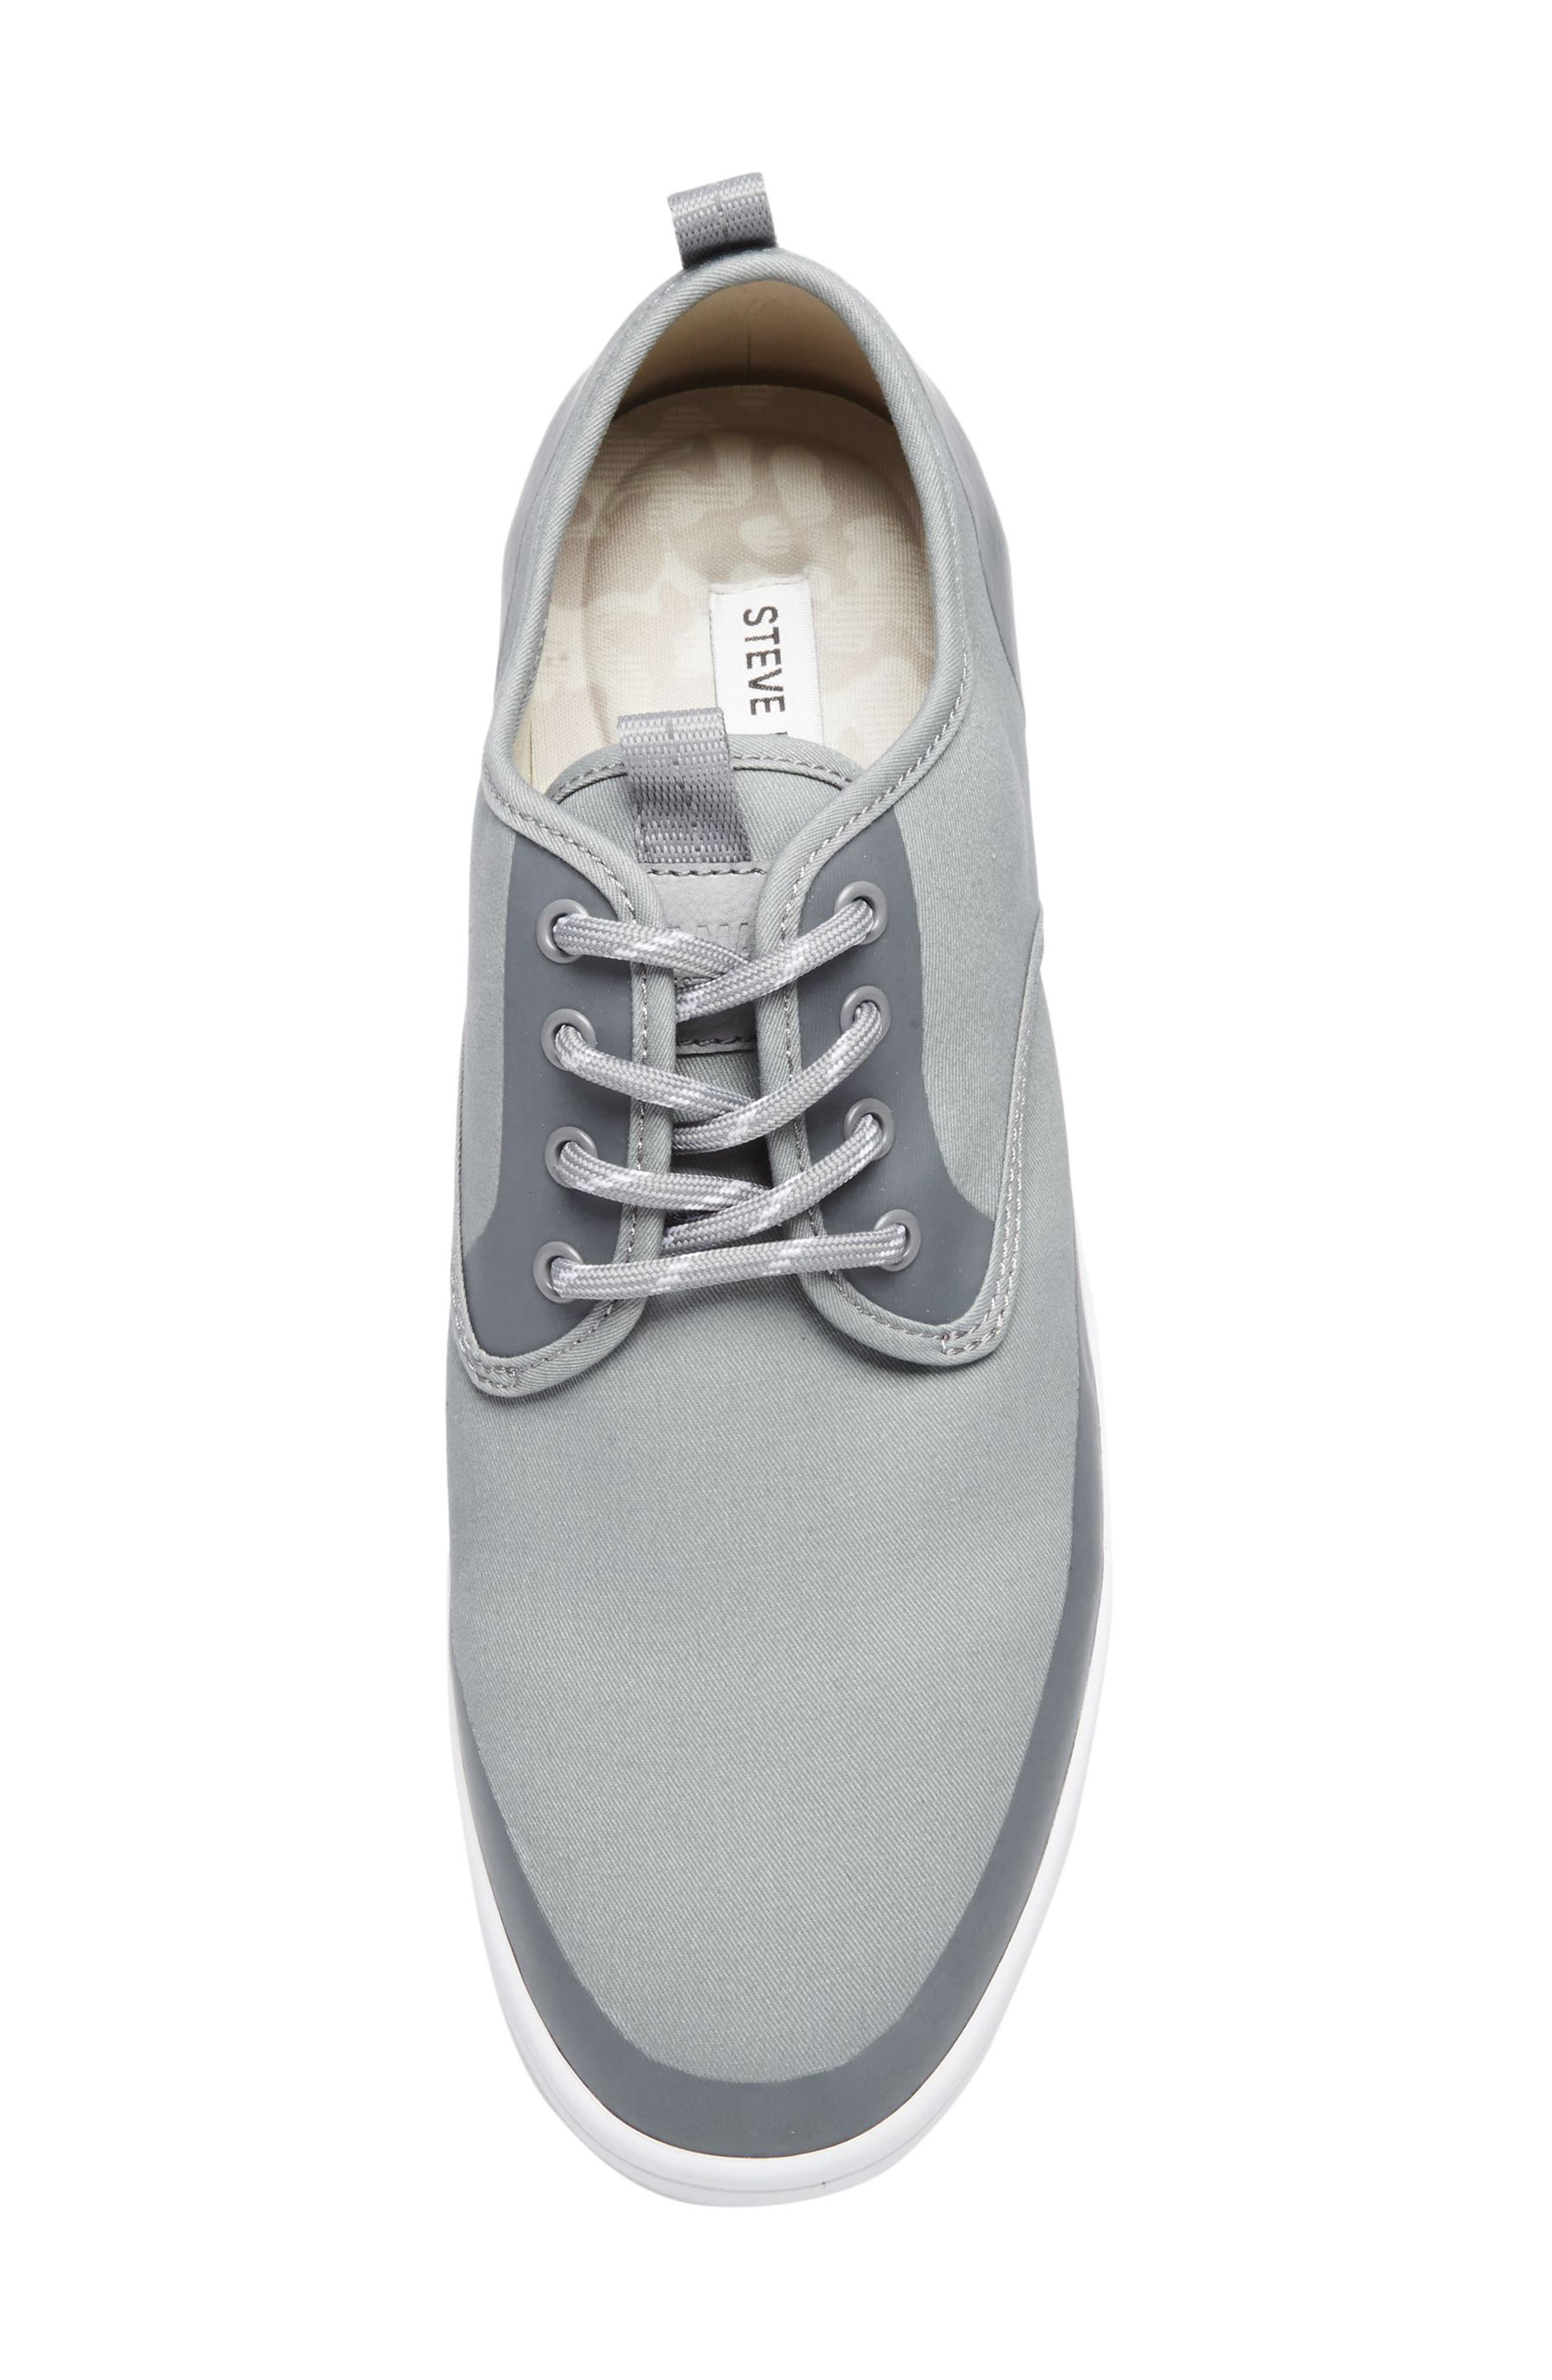 Fayette Low Top Sneaker,                             Alternate thumbnail 5, color,                             Grey Fabric